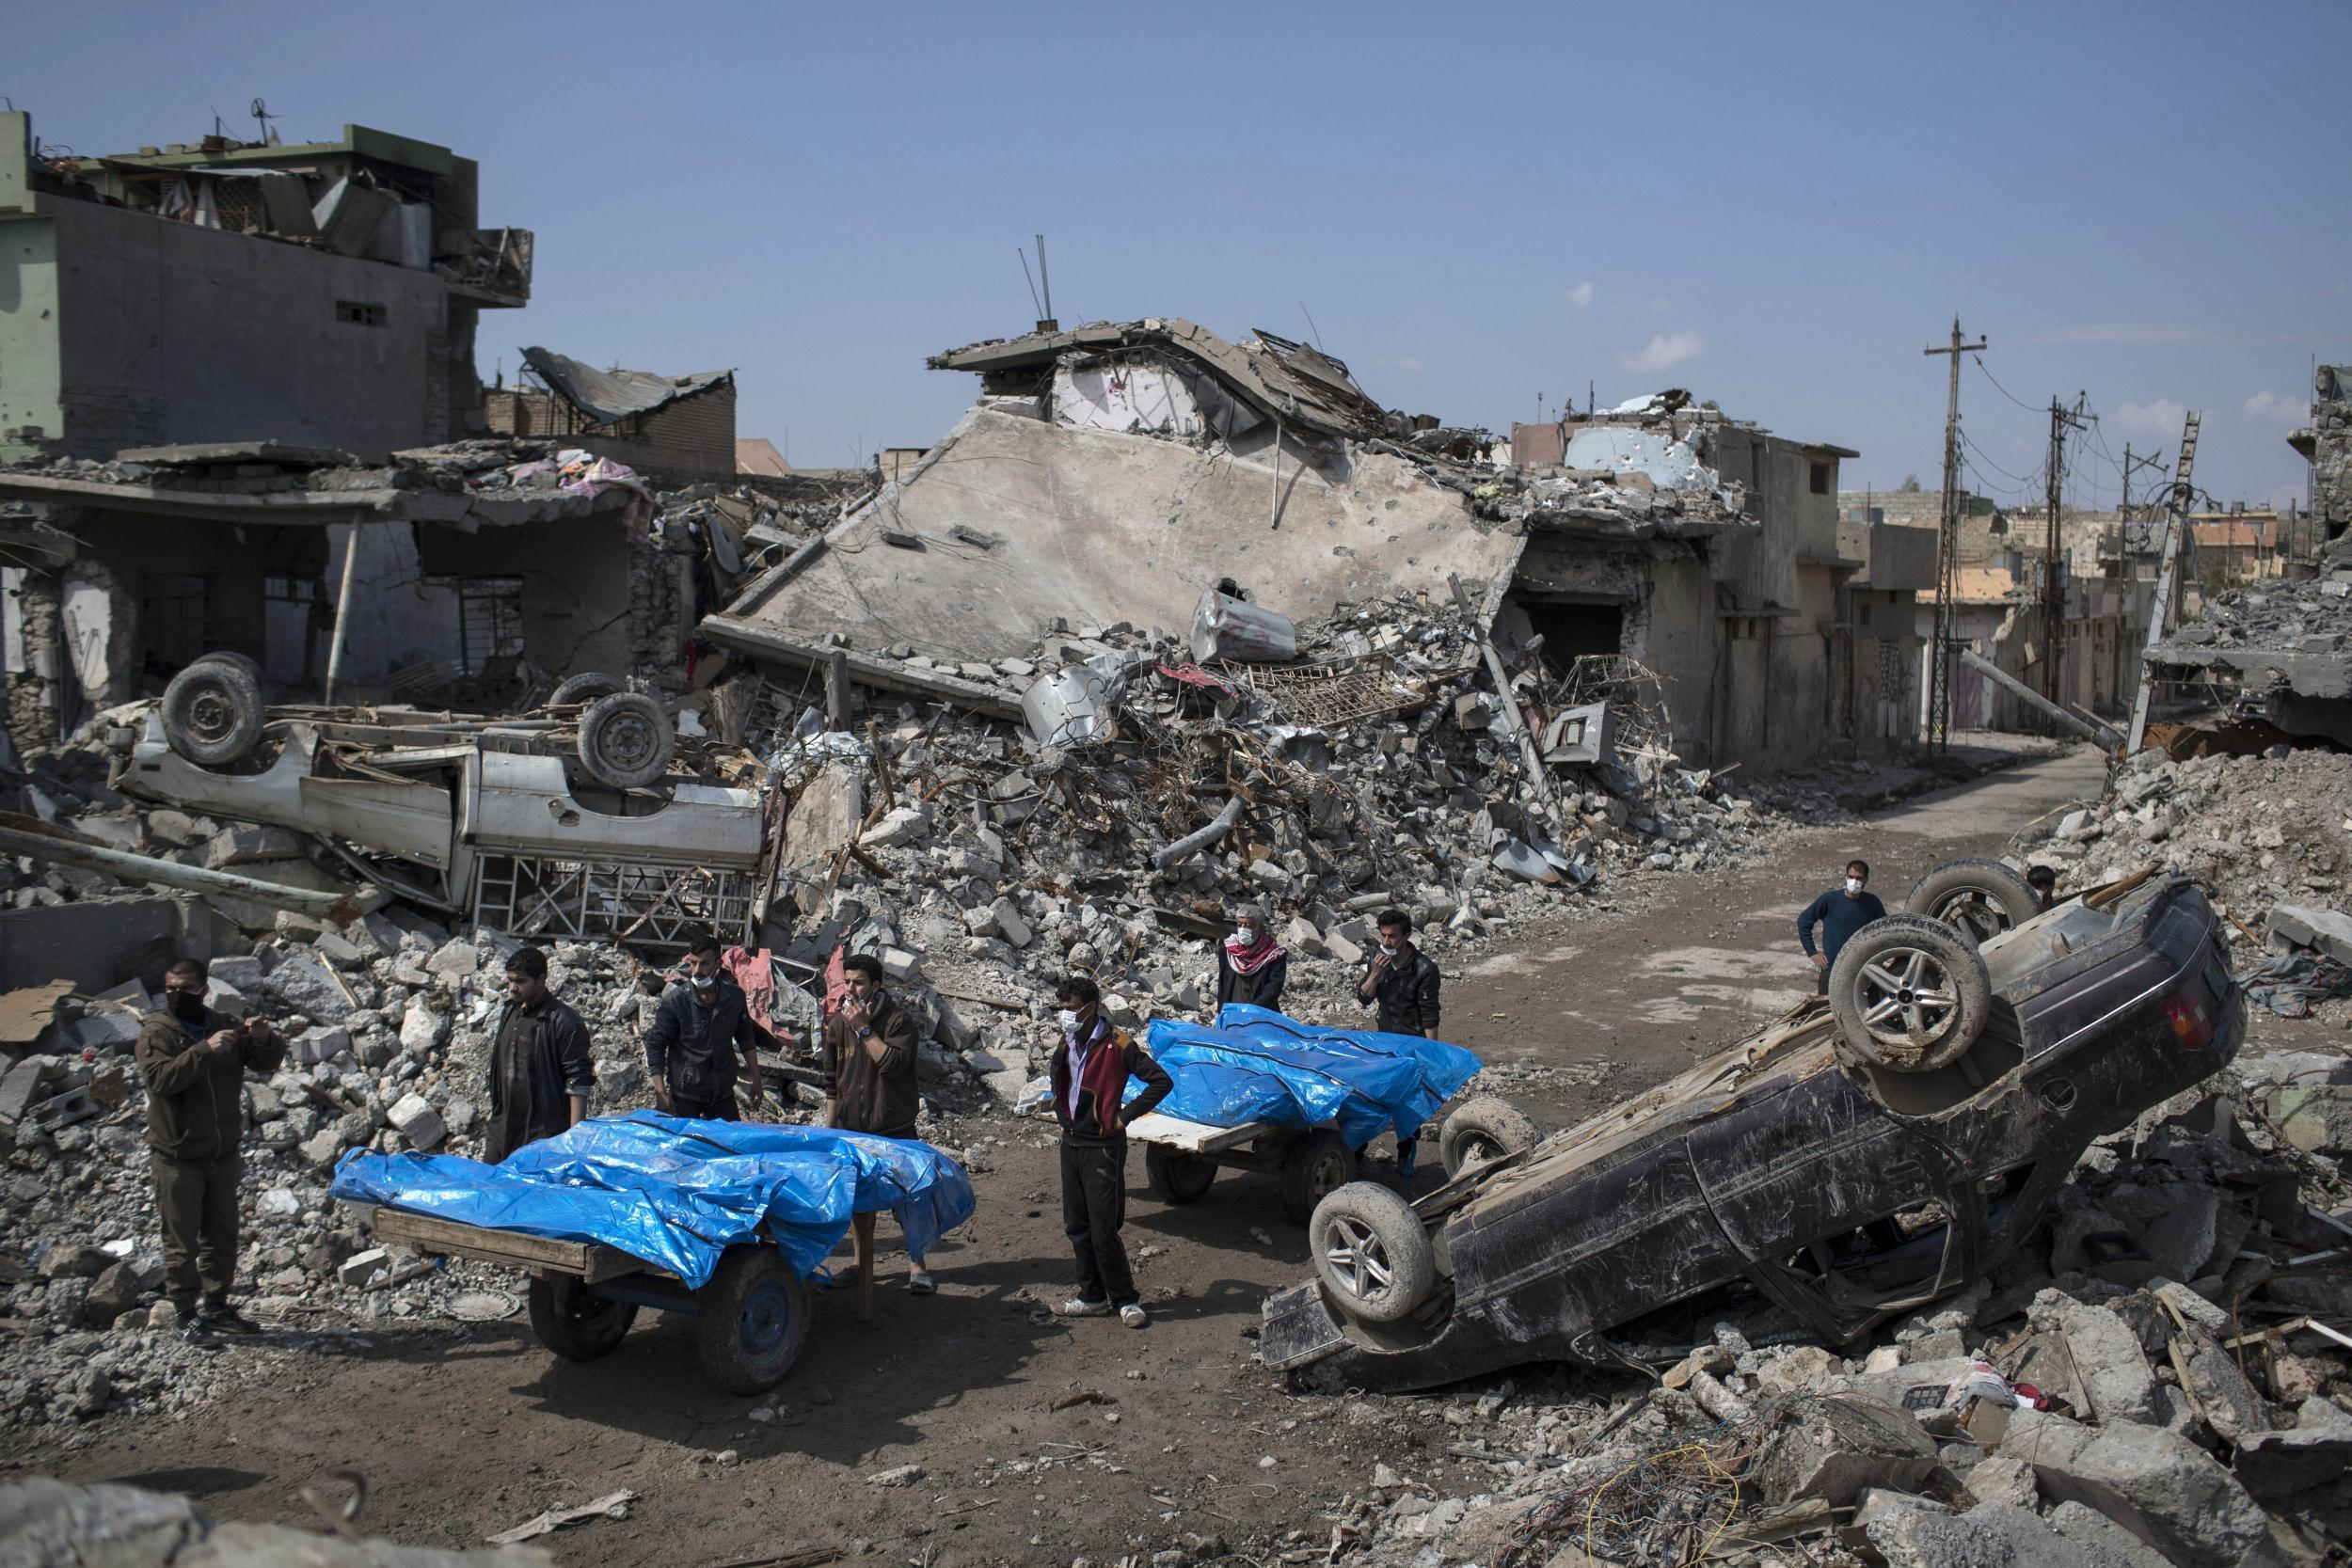 US admits it conducted Mosul air strike 'at location' where '200' civilians died